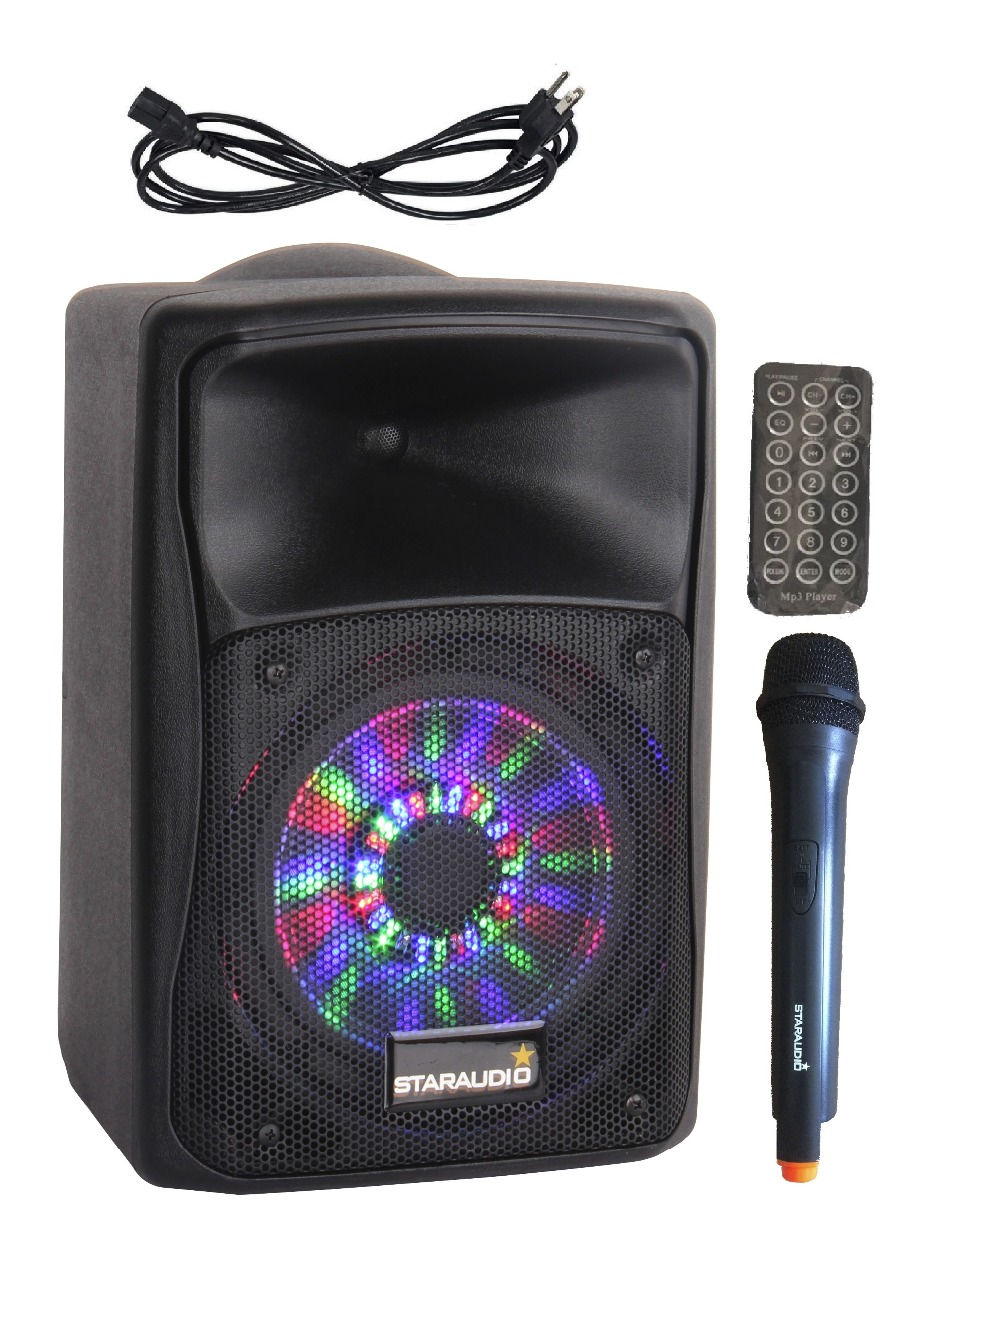 STARAUDIO Pro 8 800W PA DJ Rechargeble Battery BT USB SD MP3 Powered Stage Active Speaker UHF Mic RGB LED Lighting SBM-08RGB